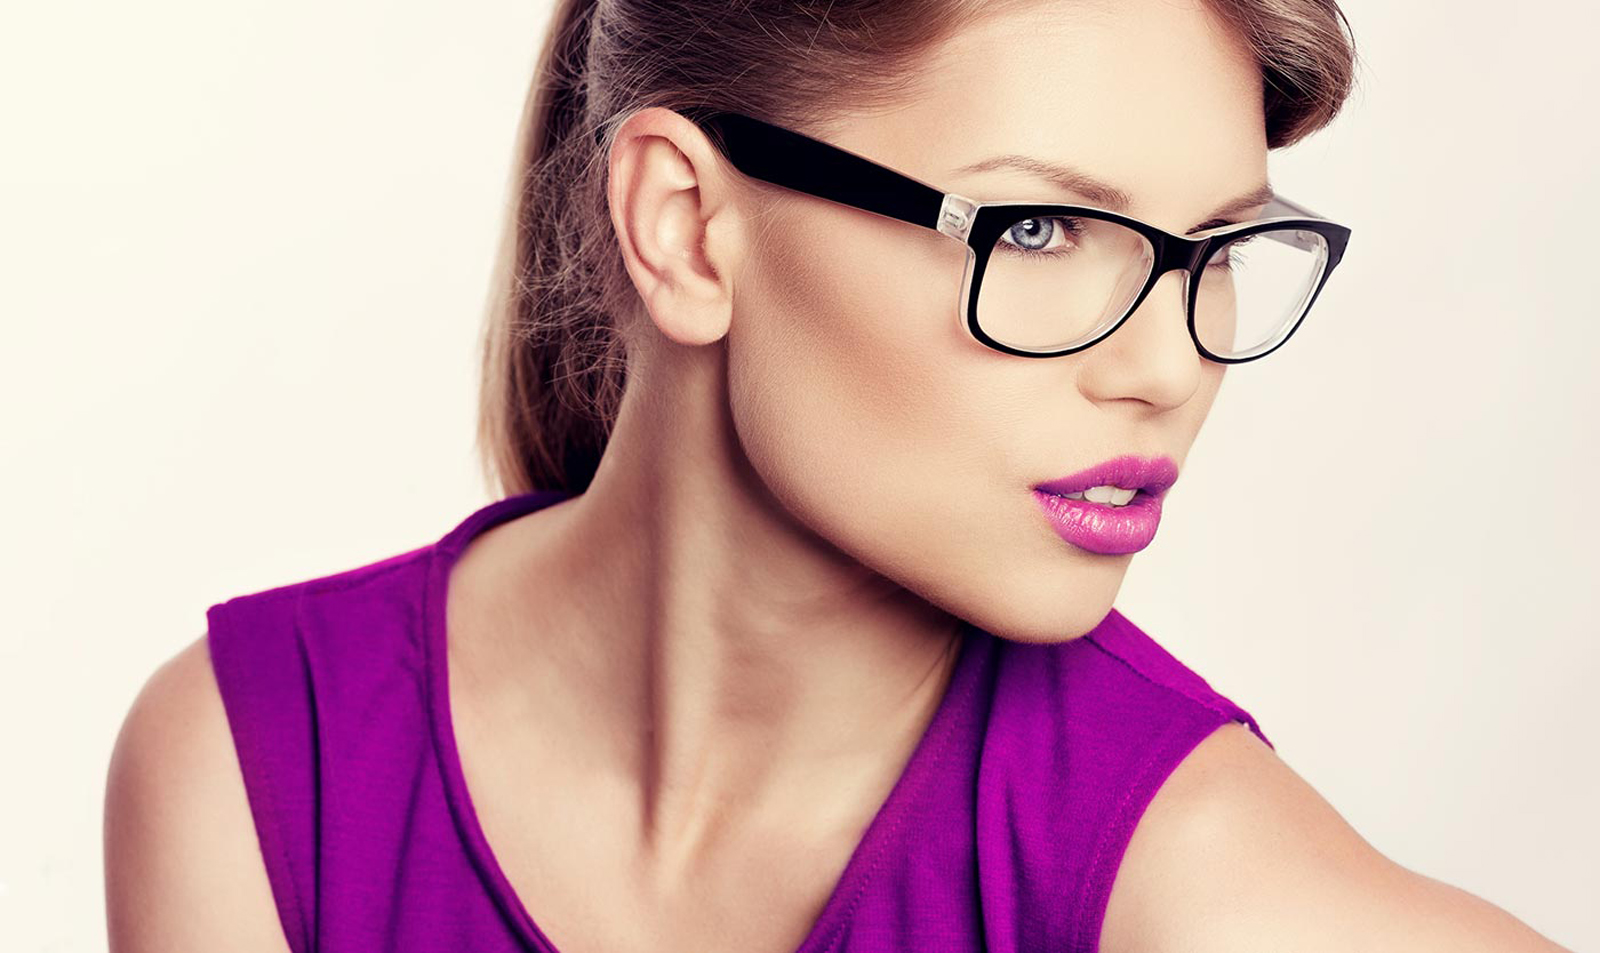 If you're looking for new eye glasses frames our optometrist in Winnipeg offers many major brands and designer brands.  Call us today to learn more!